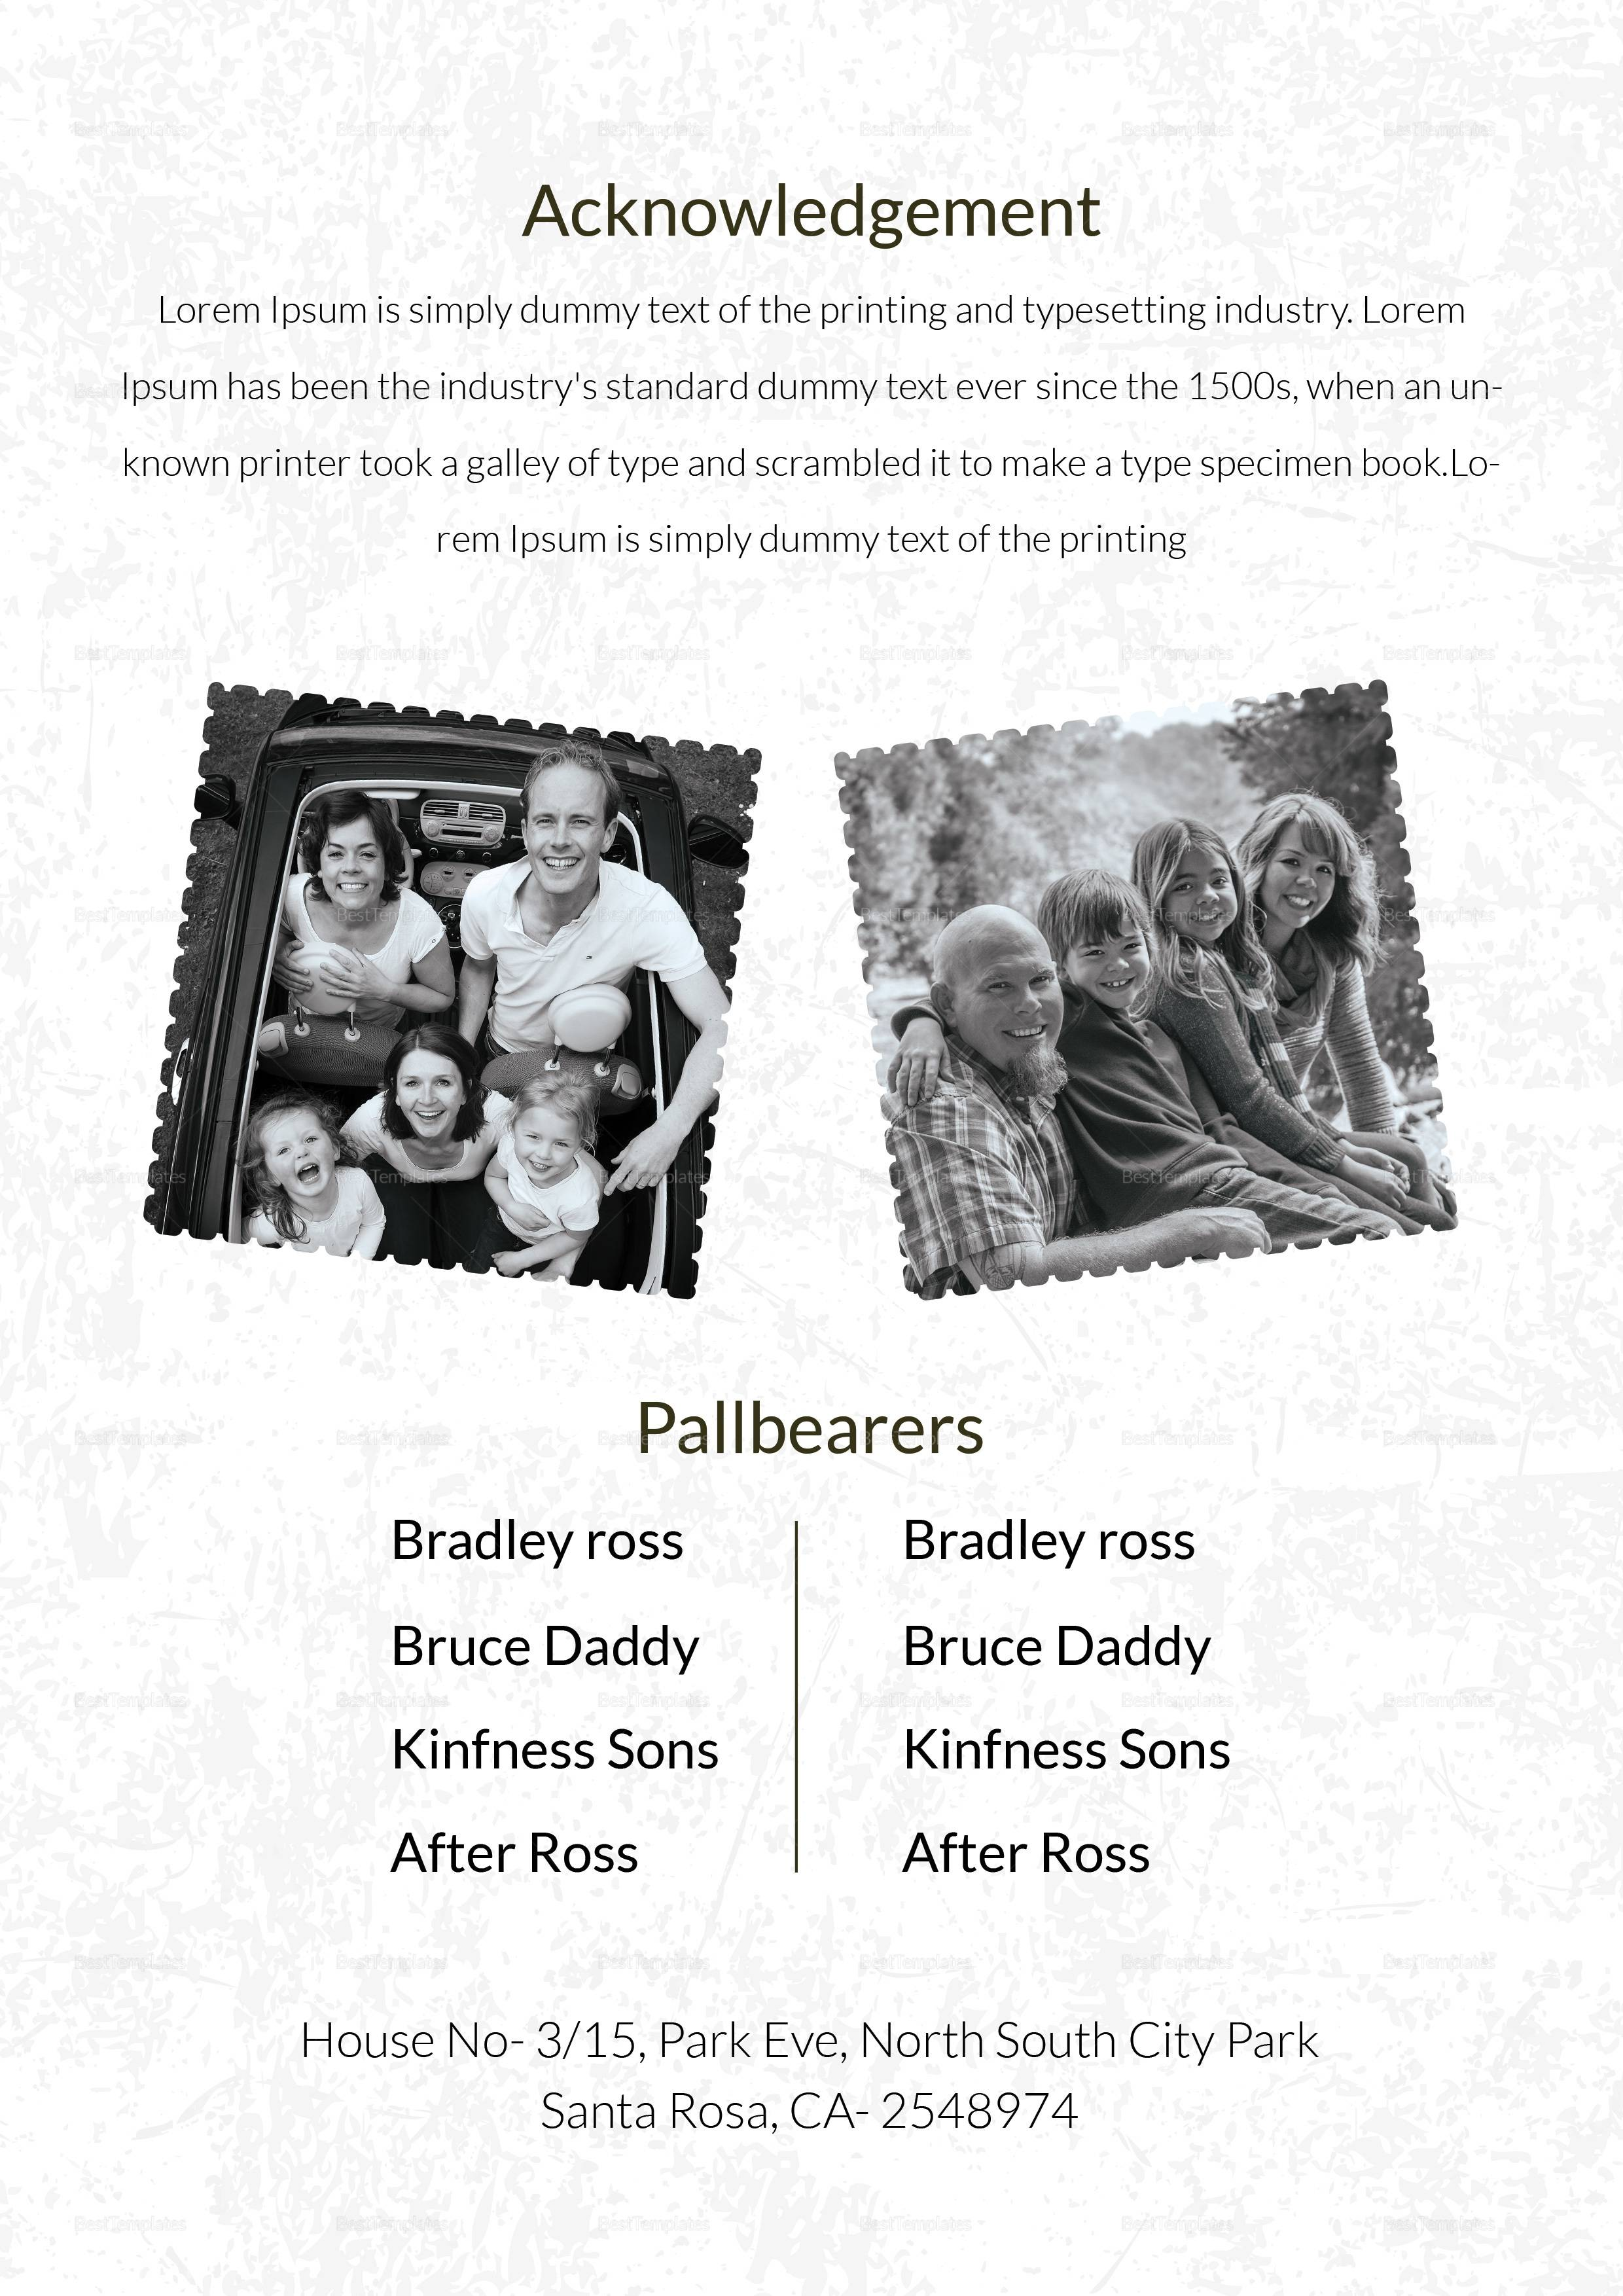 Obituary Template For Father